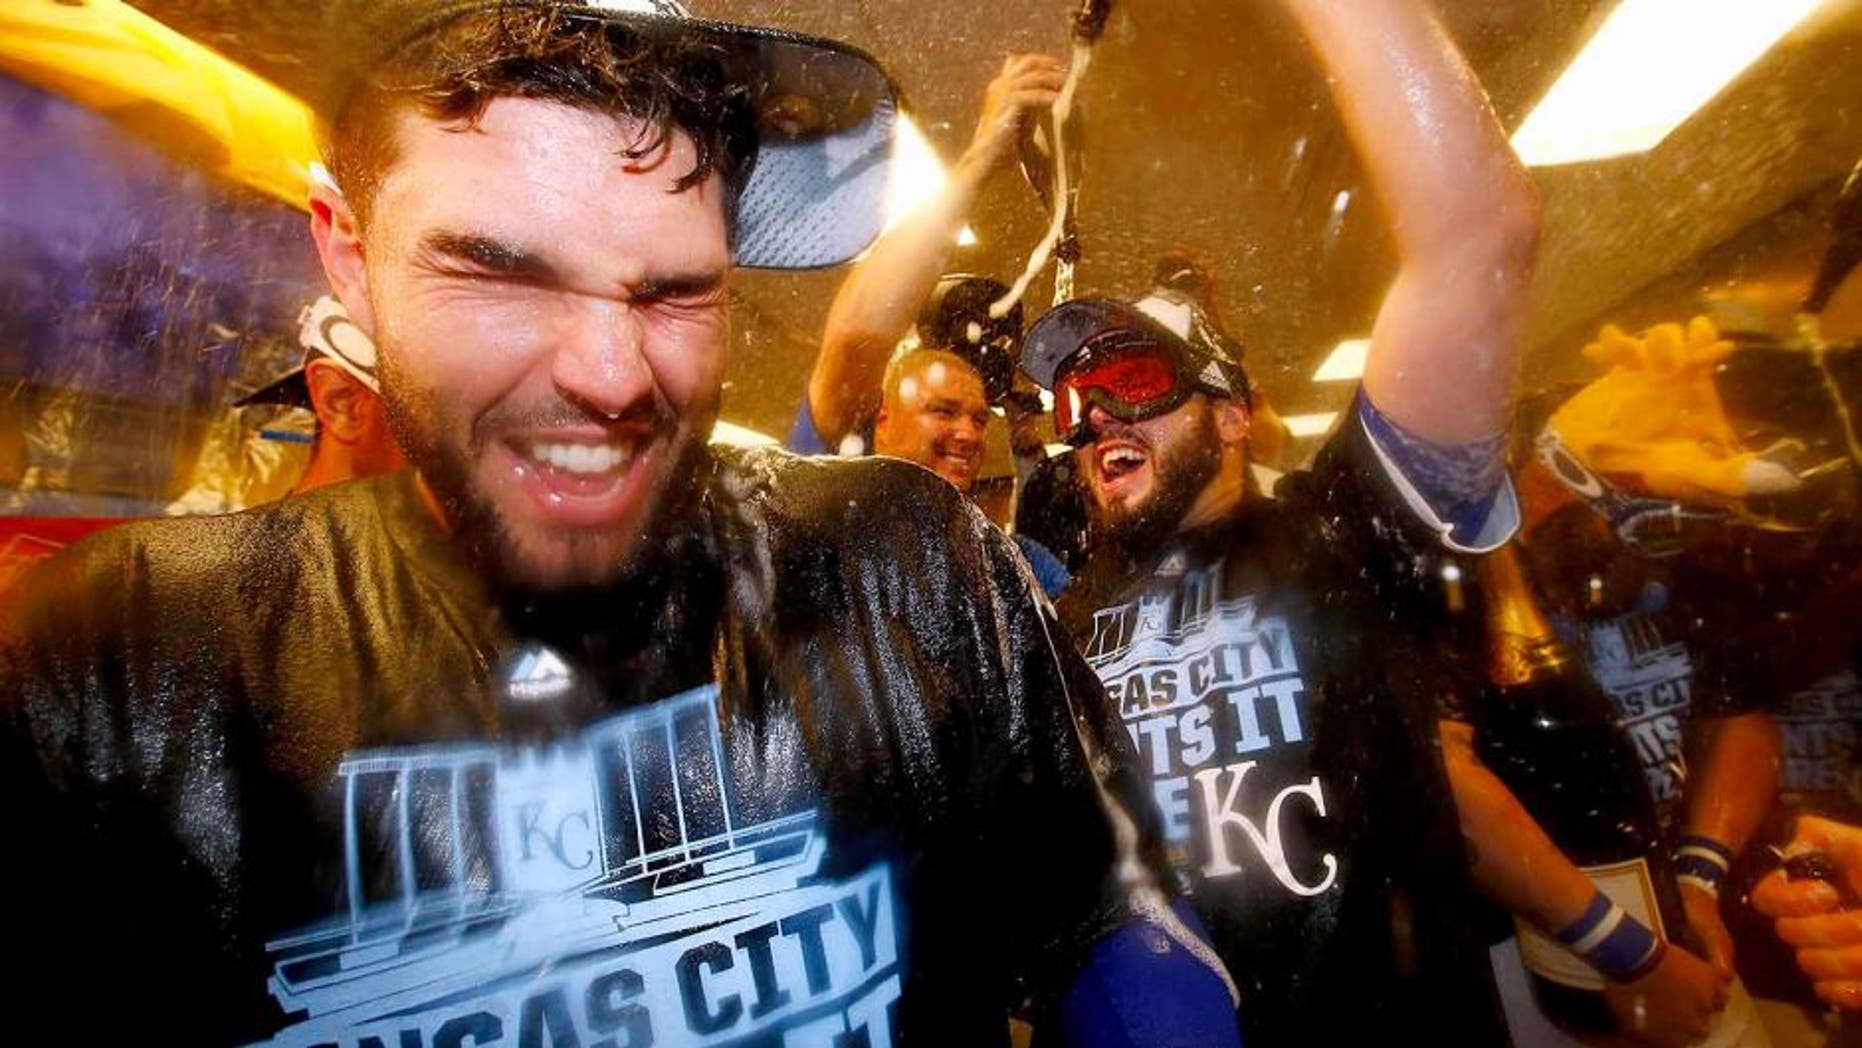 KANSAS CITY, MO - OCTOBER 14: Eric Hosmer #35 of the Kansas City Royals, left, celebrates with teammates in the clubhouse after defeating the Houston Astros 7-2 in game five of the American League Divison Series at Kauffman Stadium on October 14, 2015 in Kansas City, Missouri. (Photo by Jamie Squire/Getty Images)